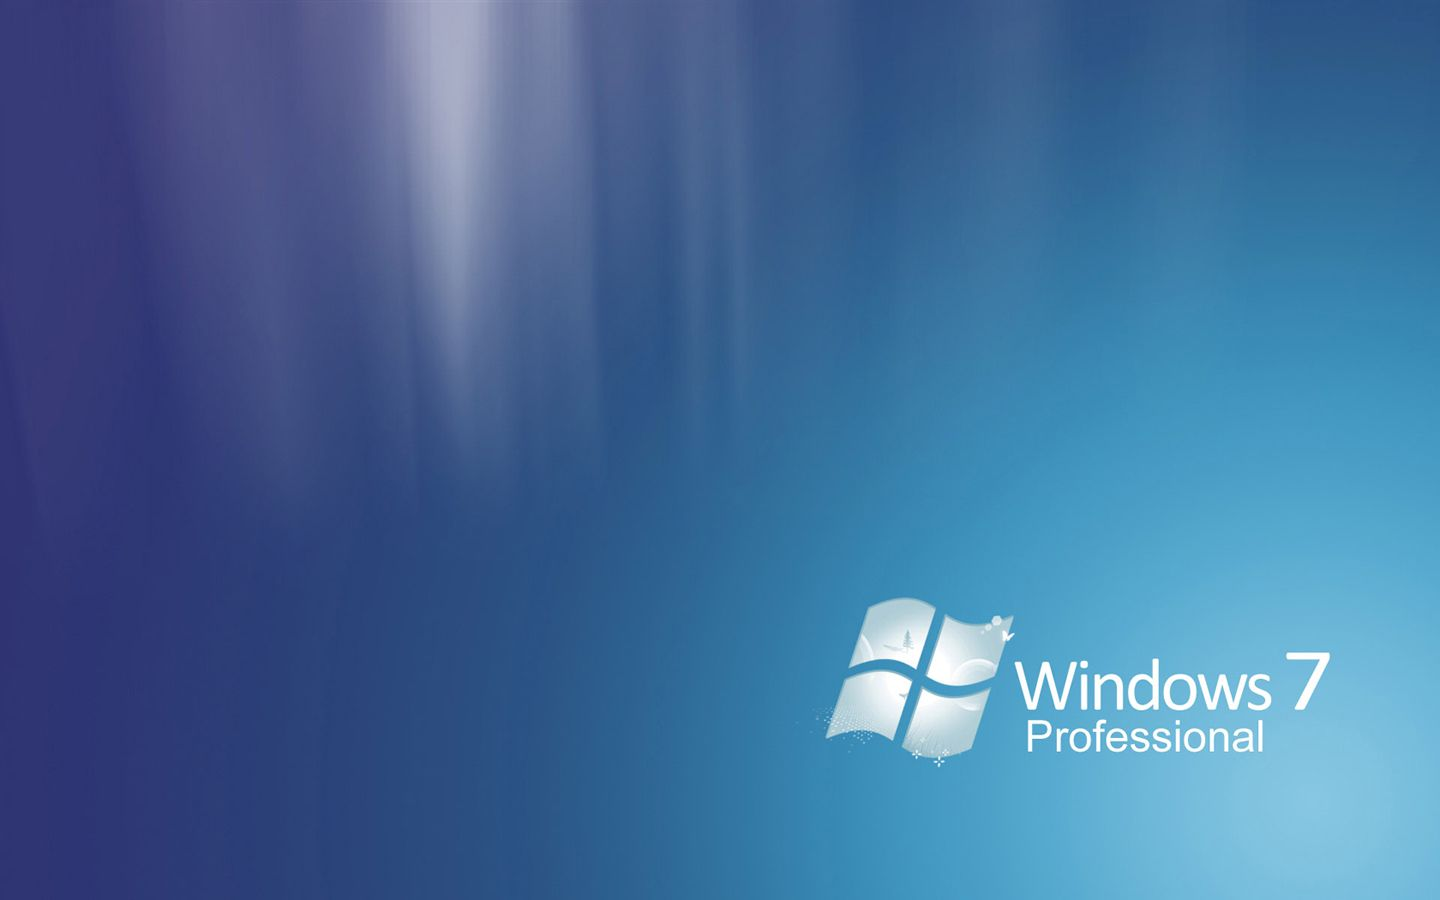 Windows 7 Background Image Computer Wallpaper Windows Wallpaper New Wallpaper Hd